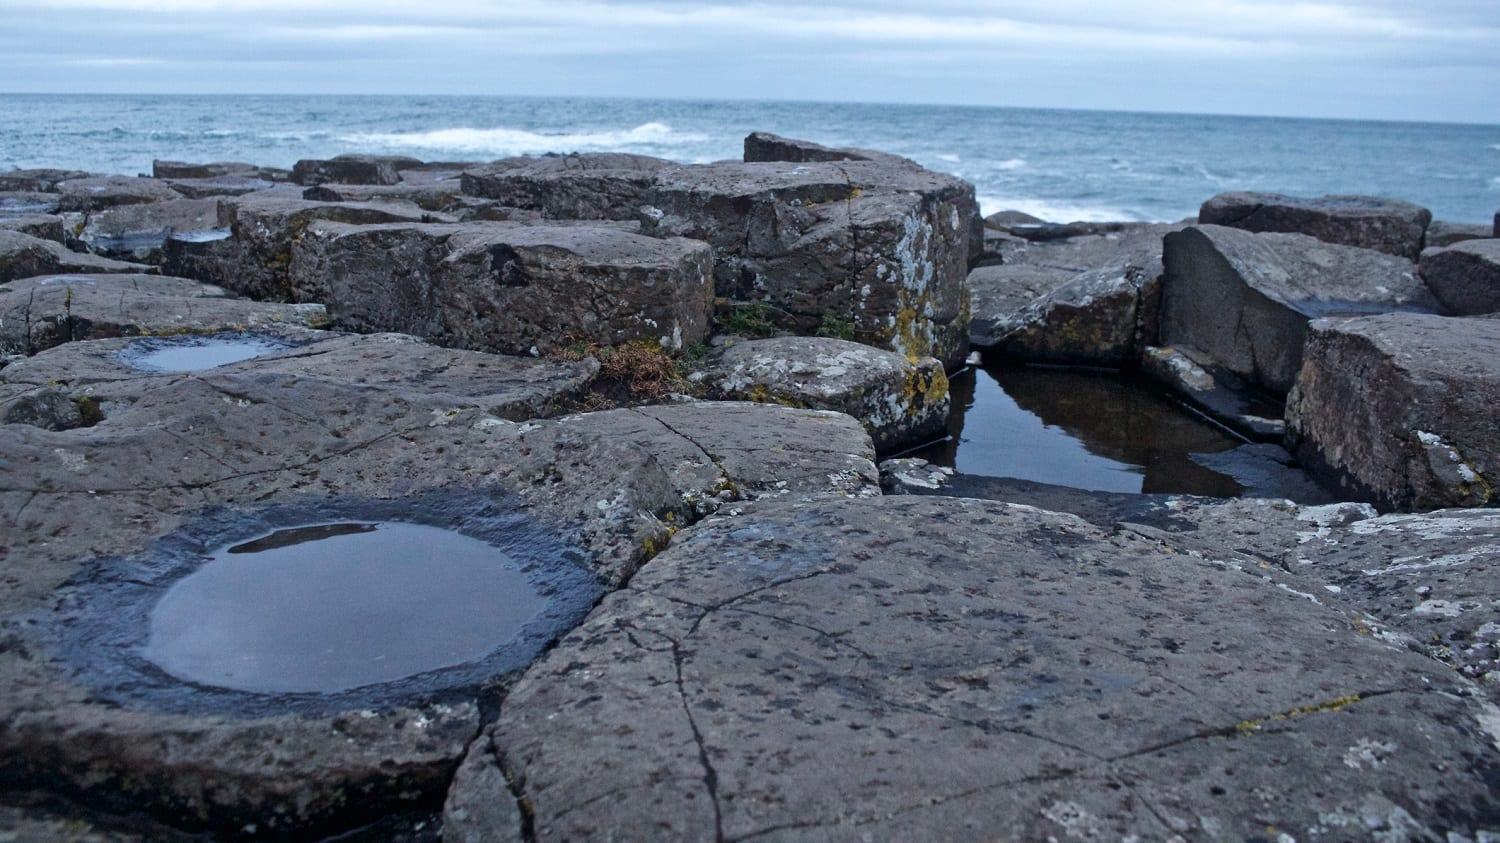 Giants Causeway with Puddles: ID 150329619 © Dan Martin | Dreamstime.com